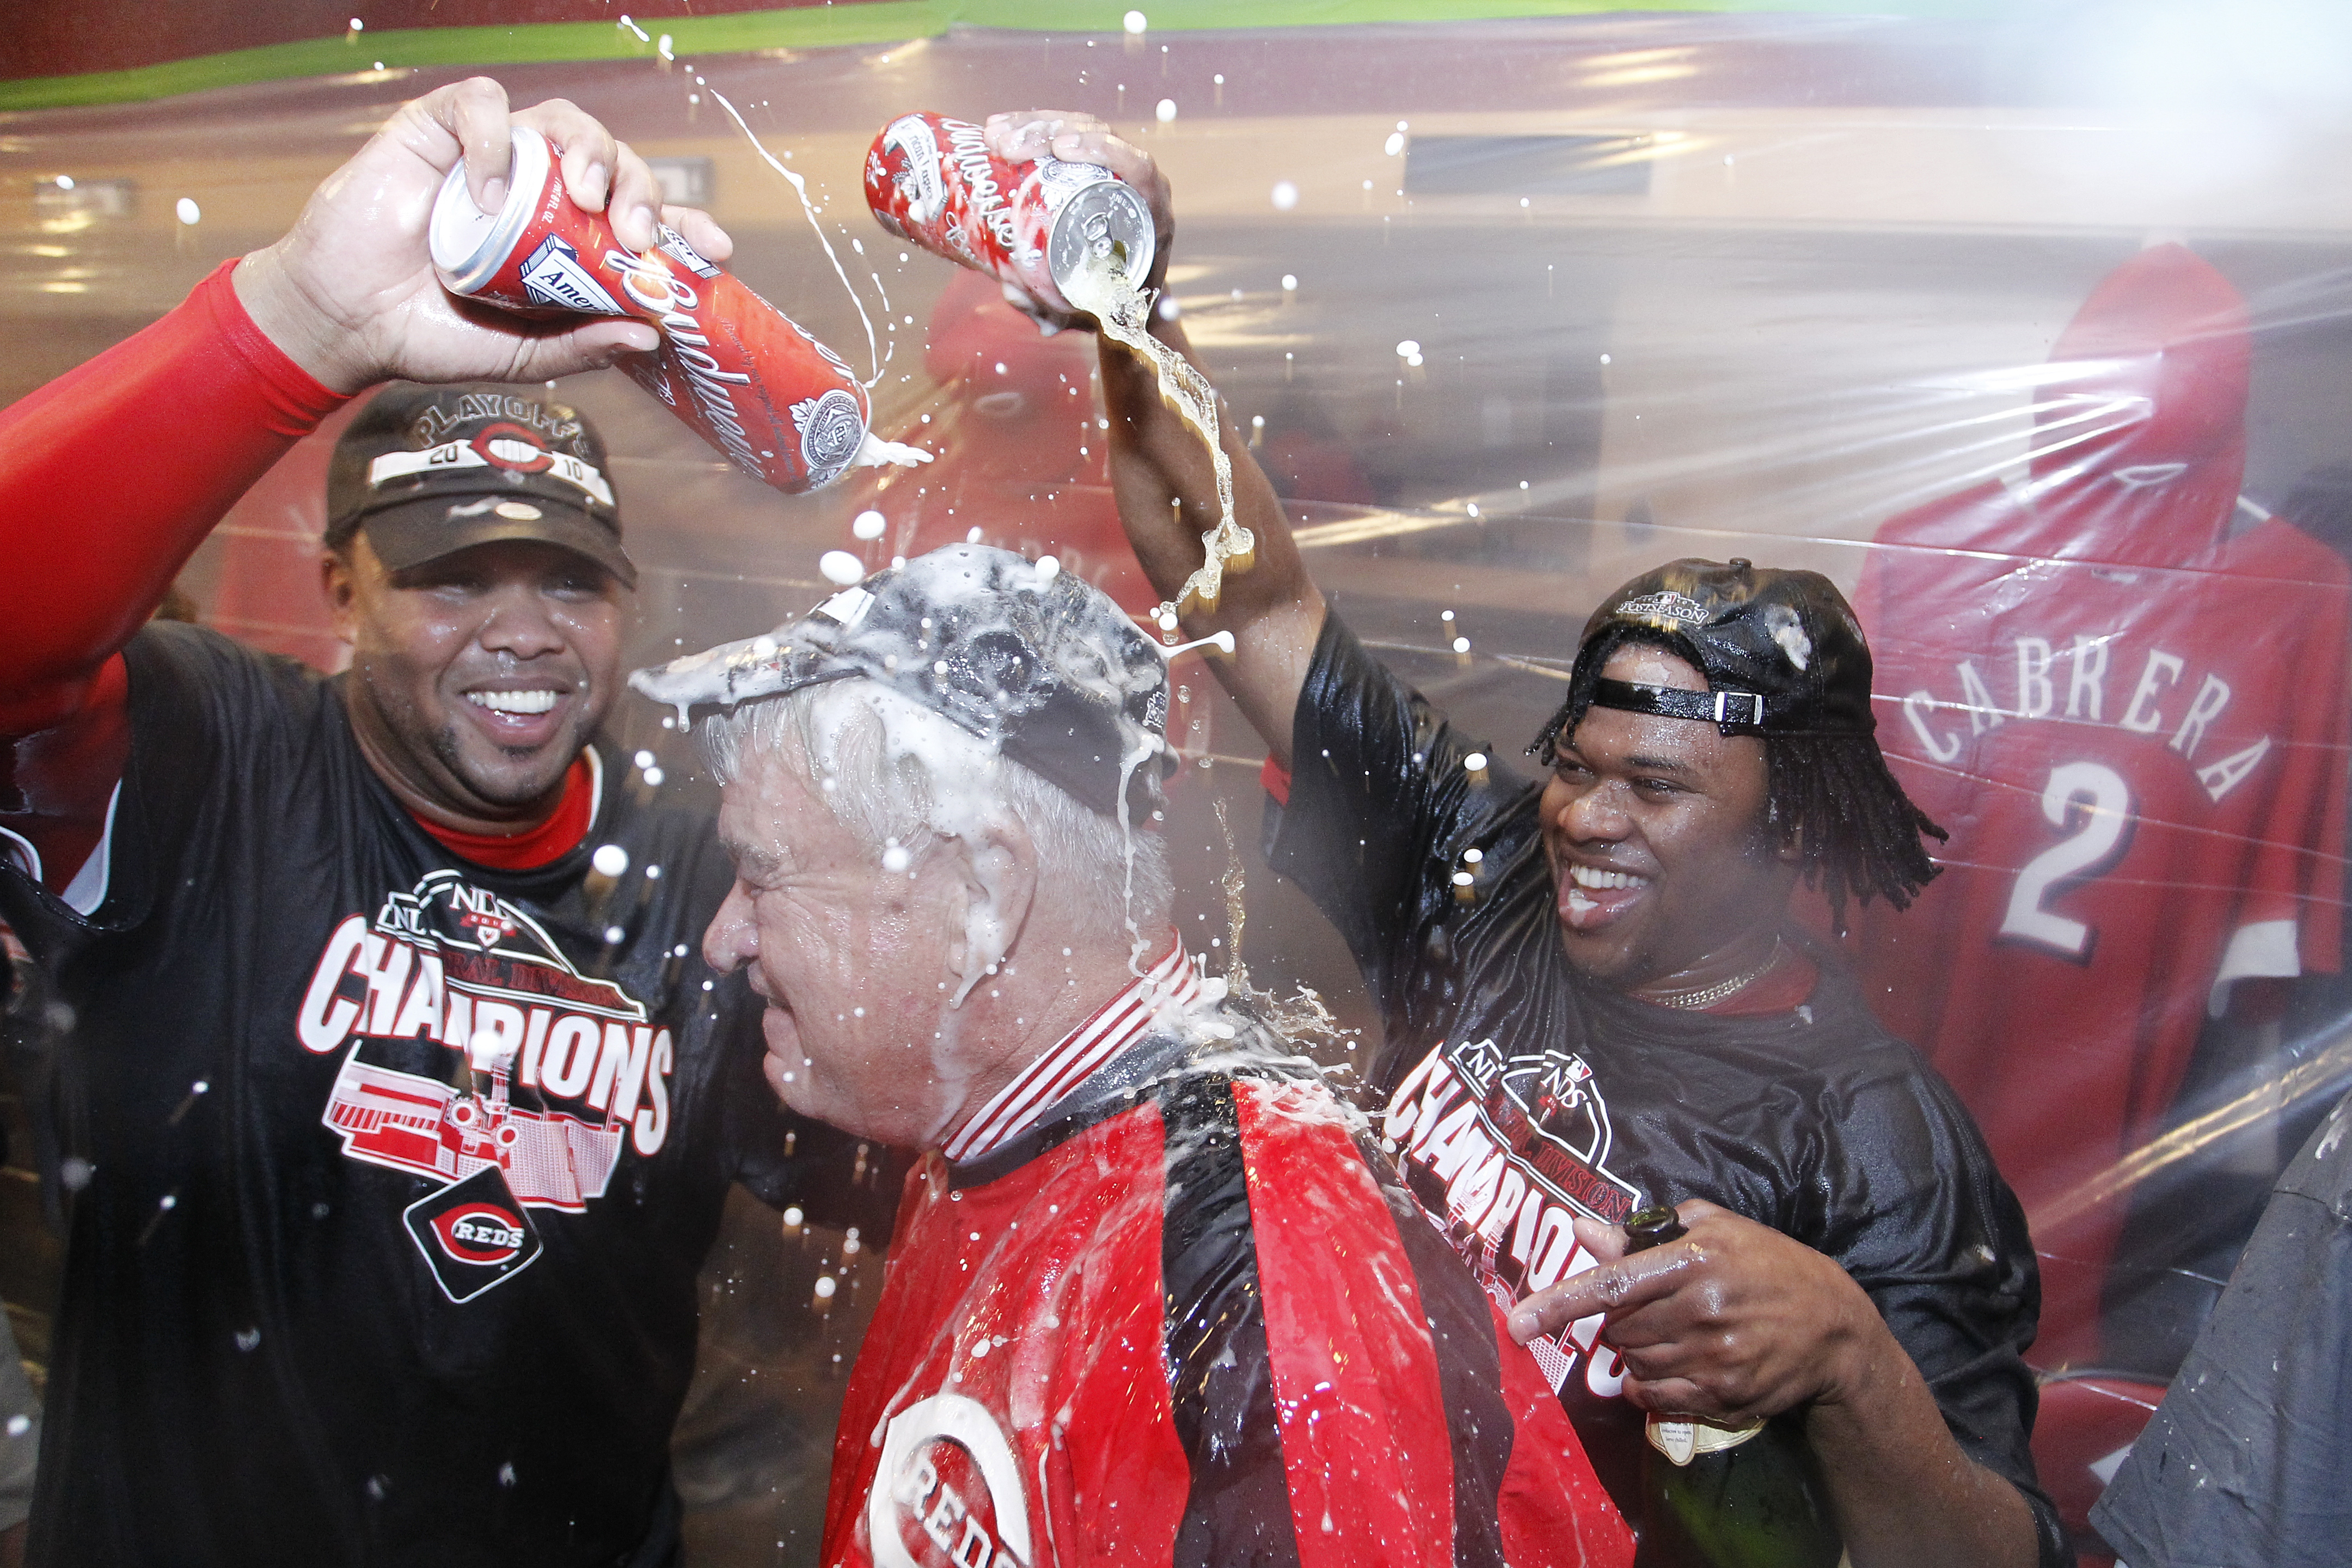 CINCINNATI, OH - SEPTEMBER 28: Johnny Cueto (R) and Francisco Cordero of the Cincinnati Reds celebrate with team president Bob Castellini following the game against the Houston Astros at Great American Ball Park on September 28, 2010 in Cincinnati, Ohio.